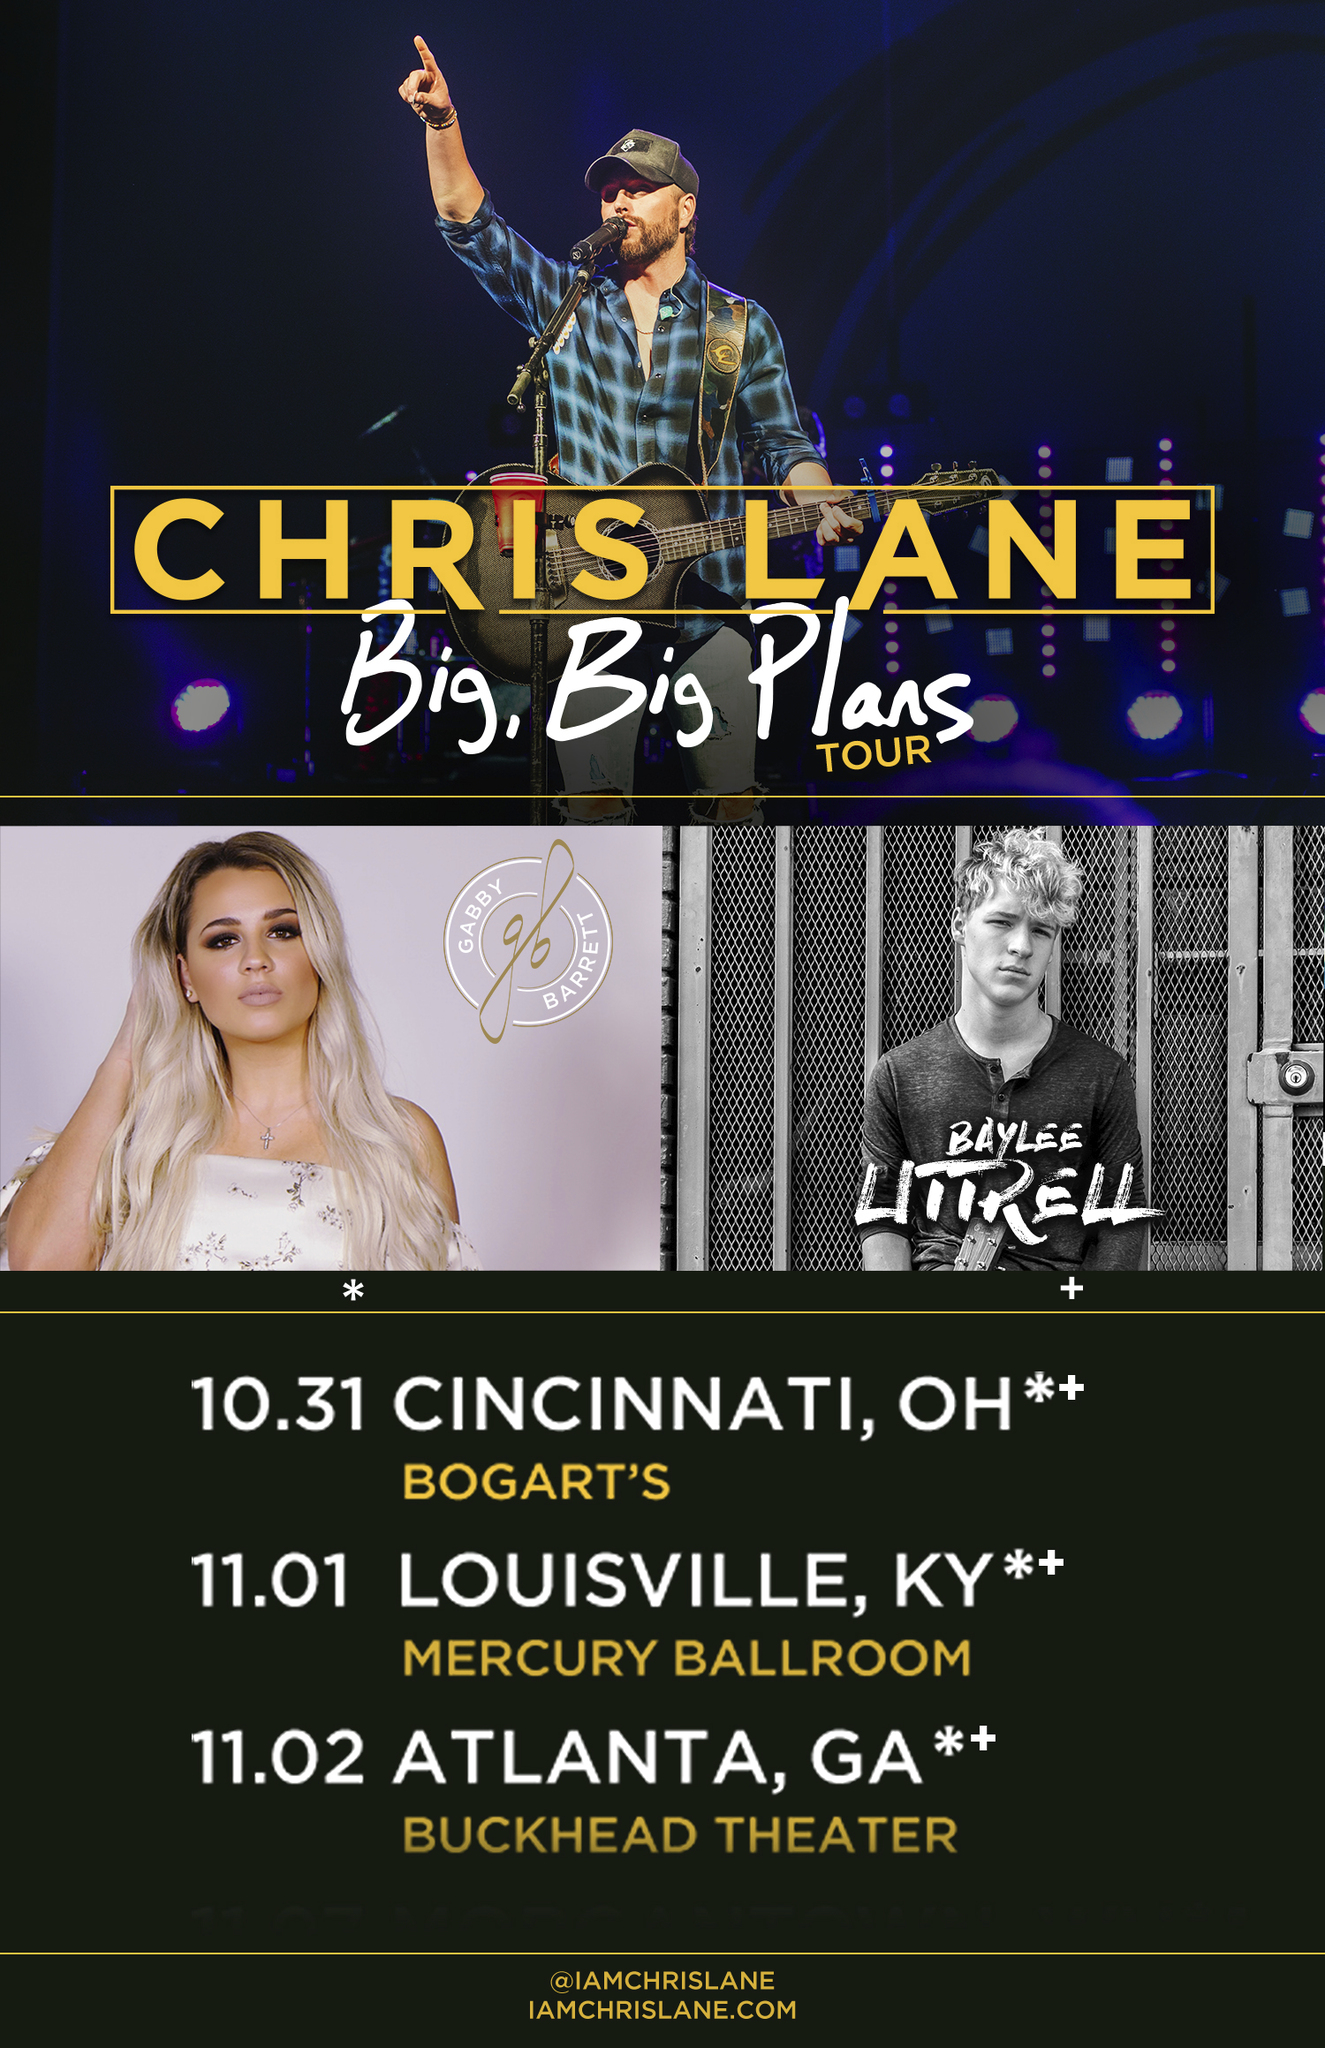 Baylee Joining Chris Lane on Big Big Plans Tour